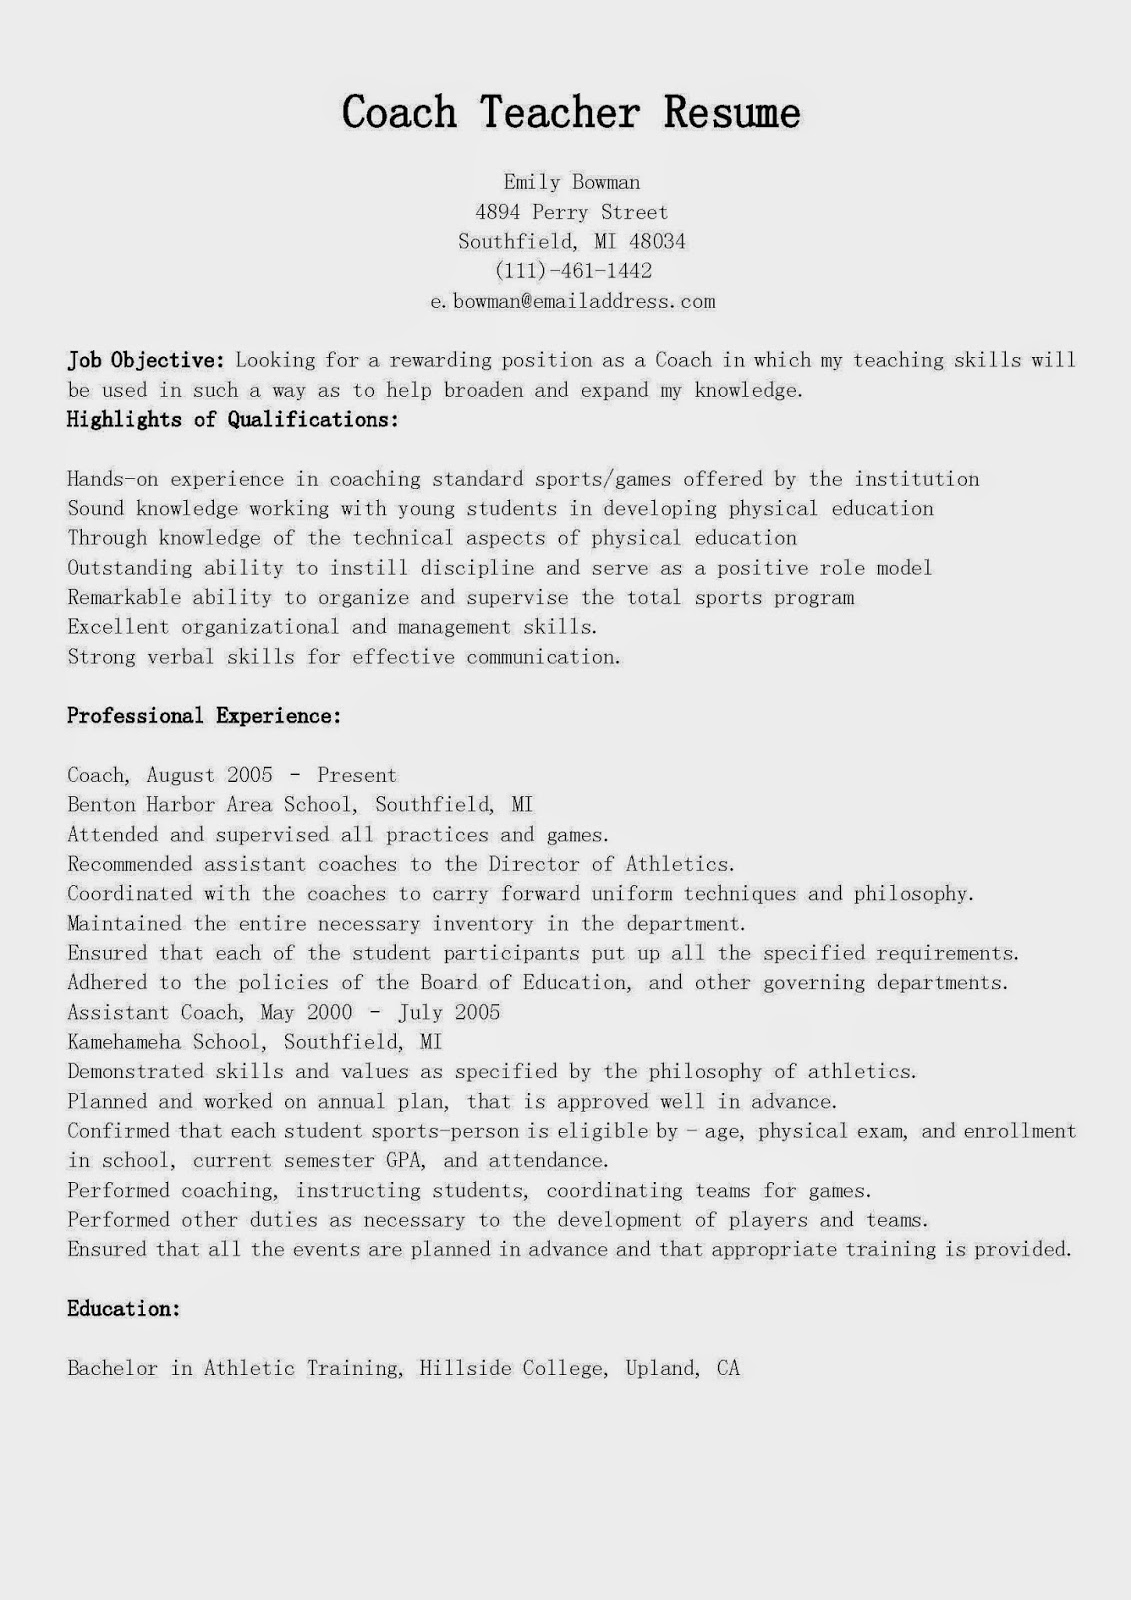 resume samples  coach teacher resume sample